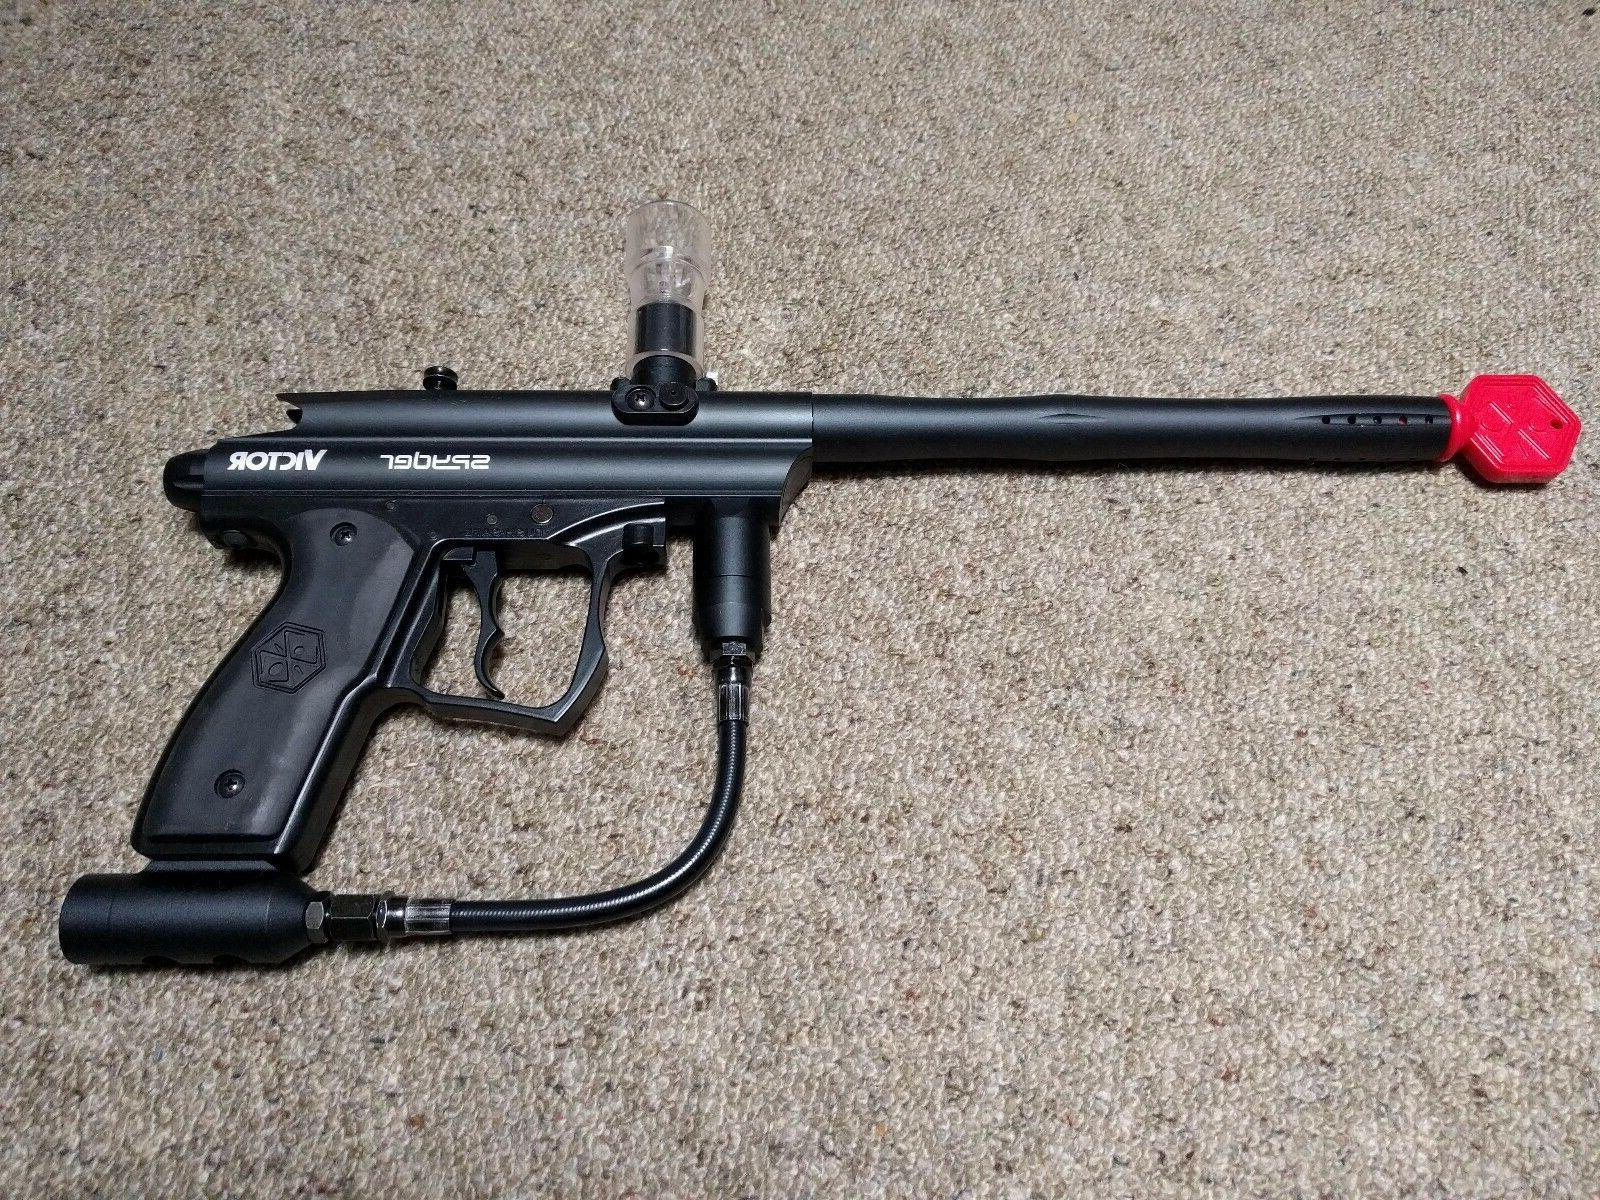 victor paintball gun marker and assoc equipment